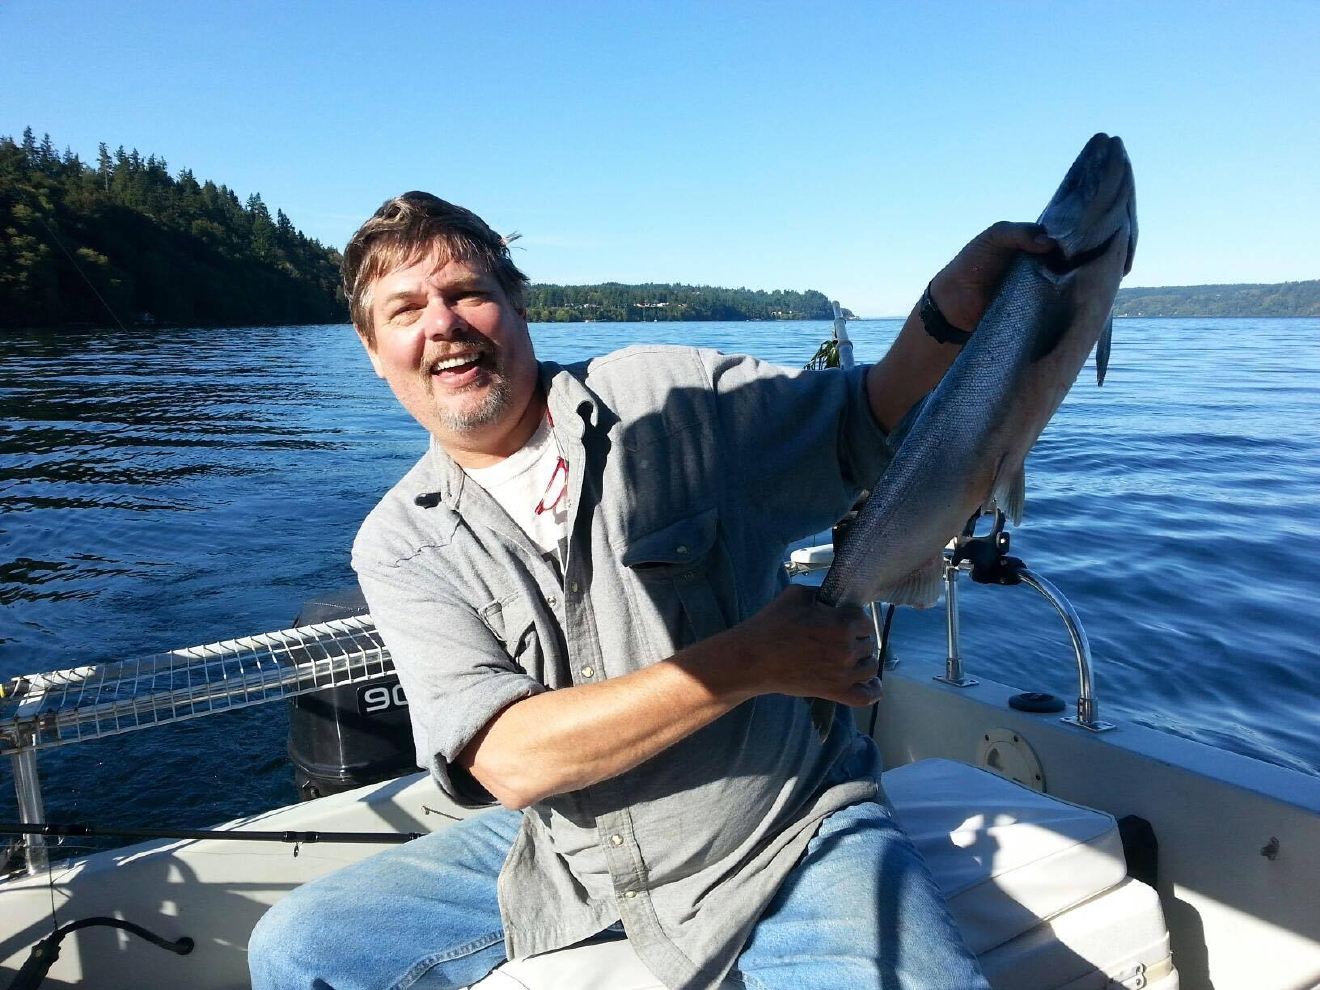 The daughter of Capt. Jeff Hathaway says he was on board F/V Destination when it went missing in Alaska over the weekend. (Photo: Hathaway family)